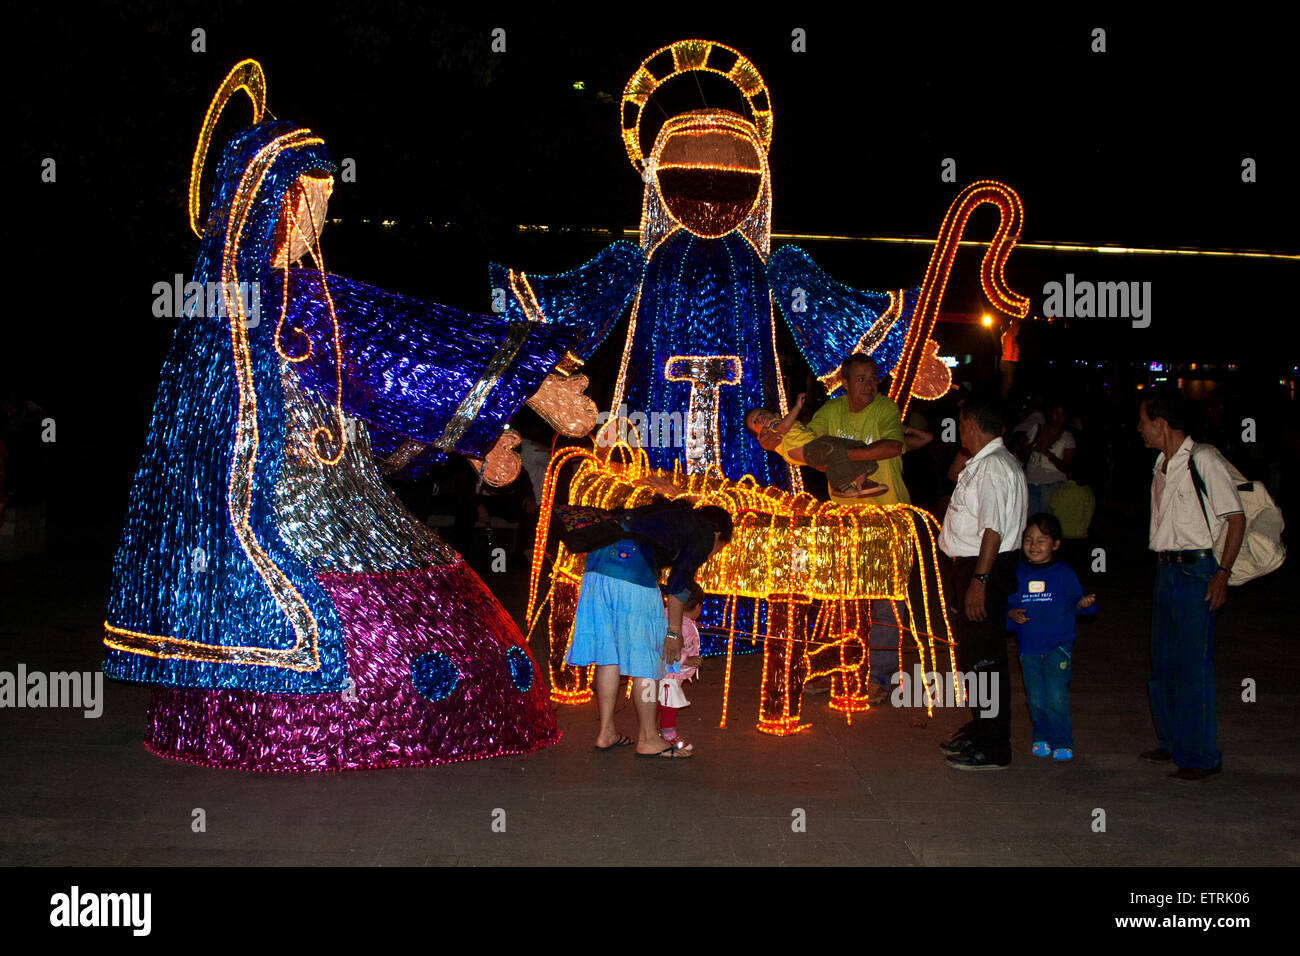 Medellin, Colombia, Colombia, Medellin, Festival Of Lights, Source Of Light,